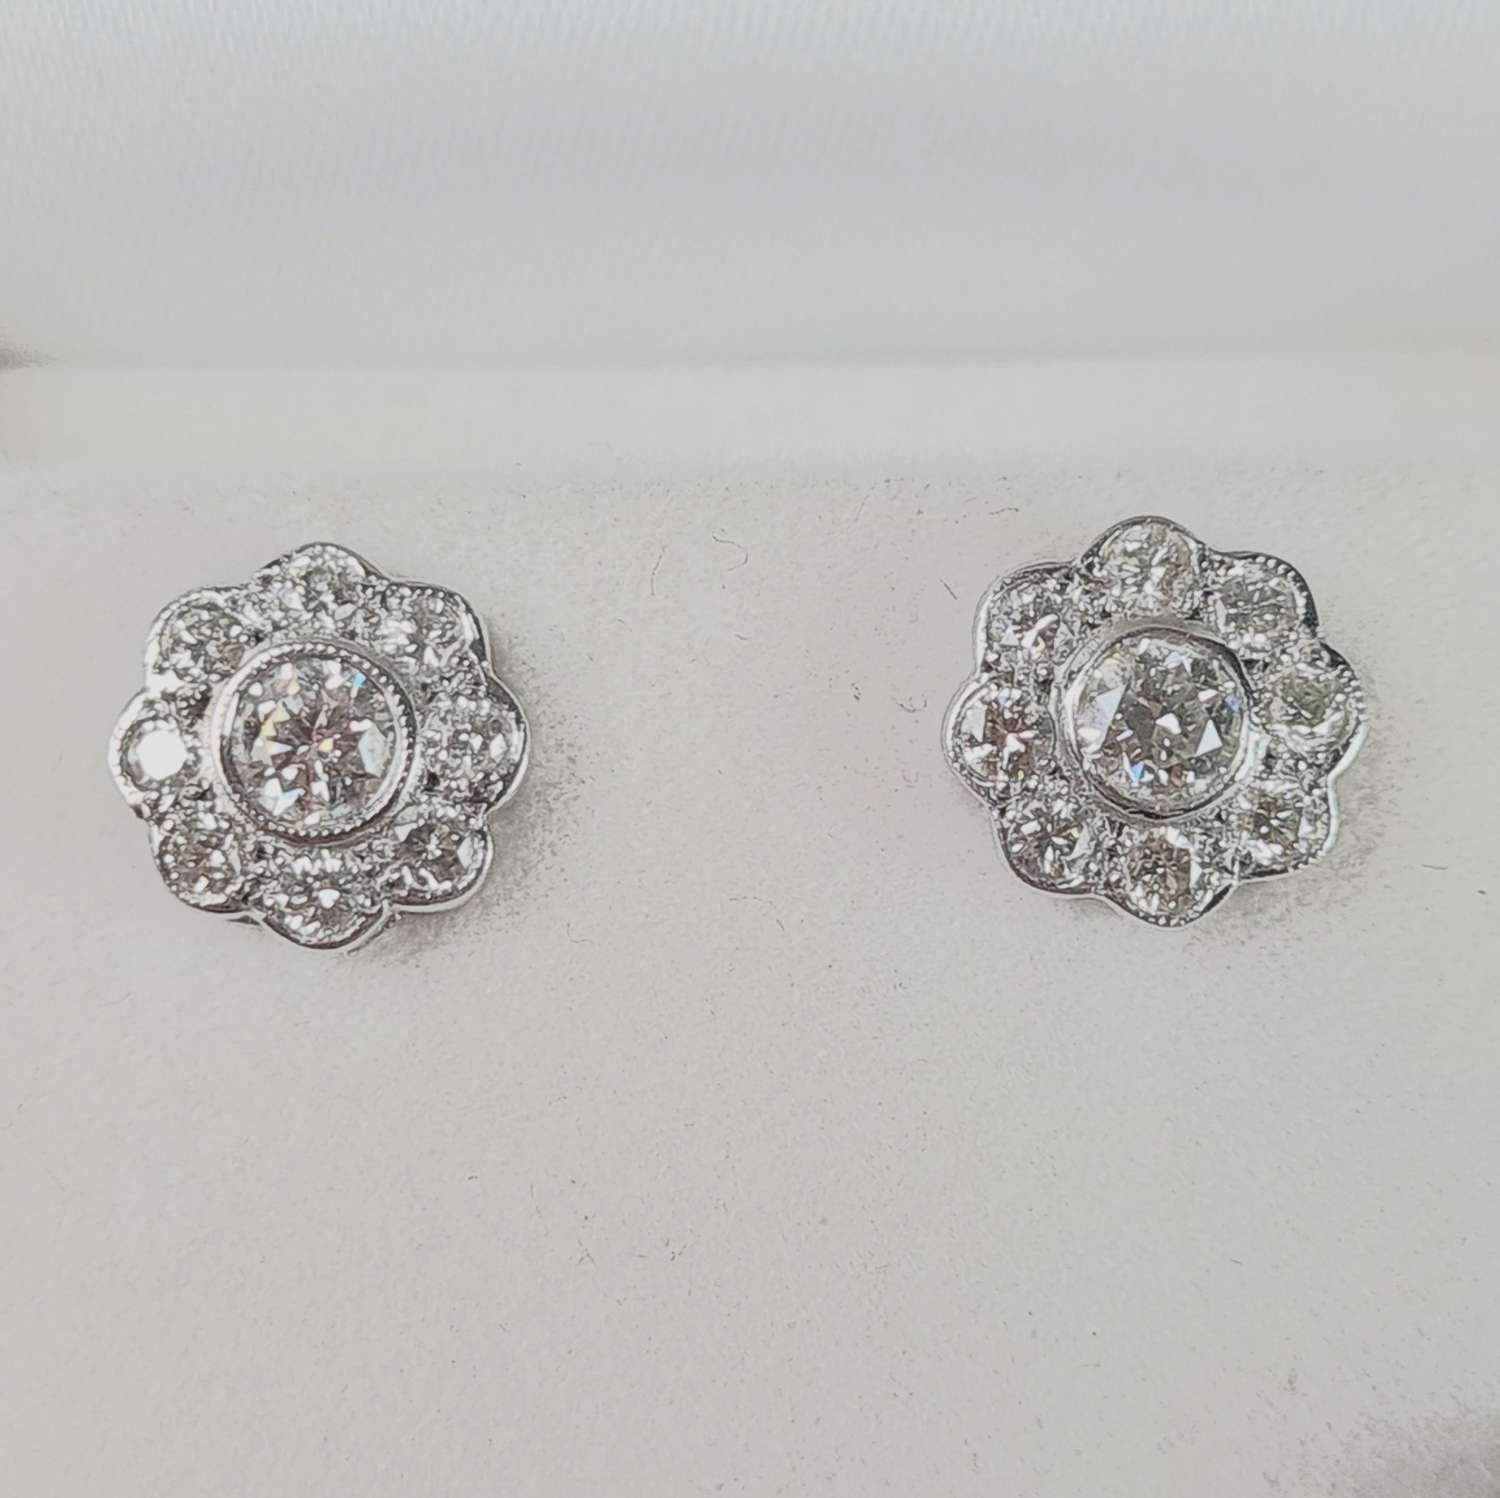 Pair of Diamond Cluster Earrings